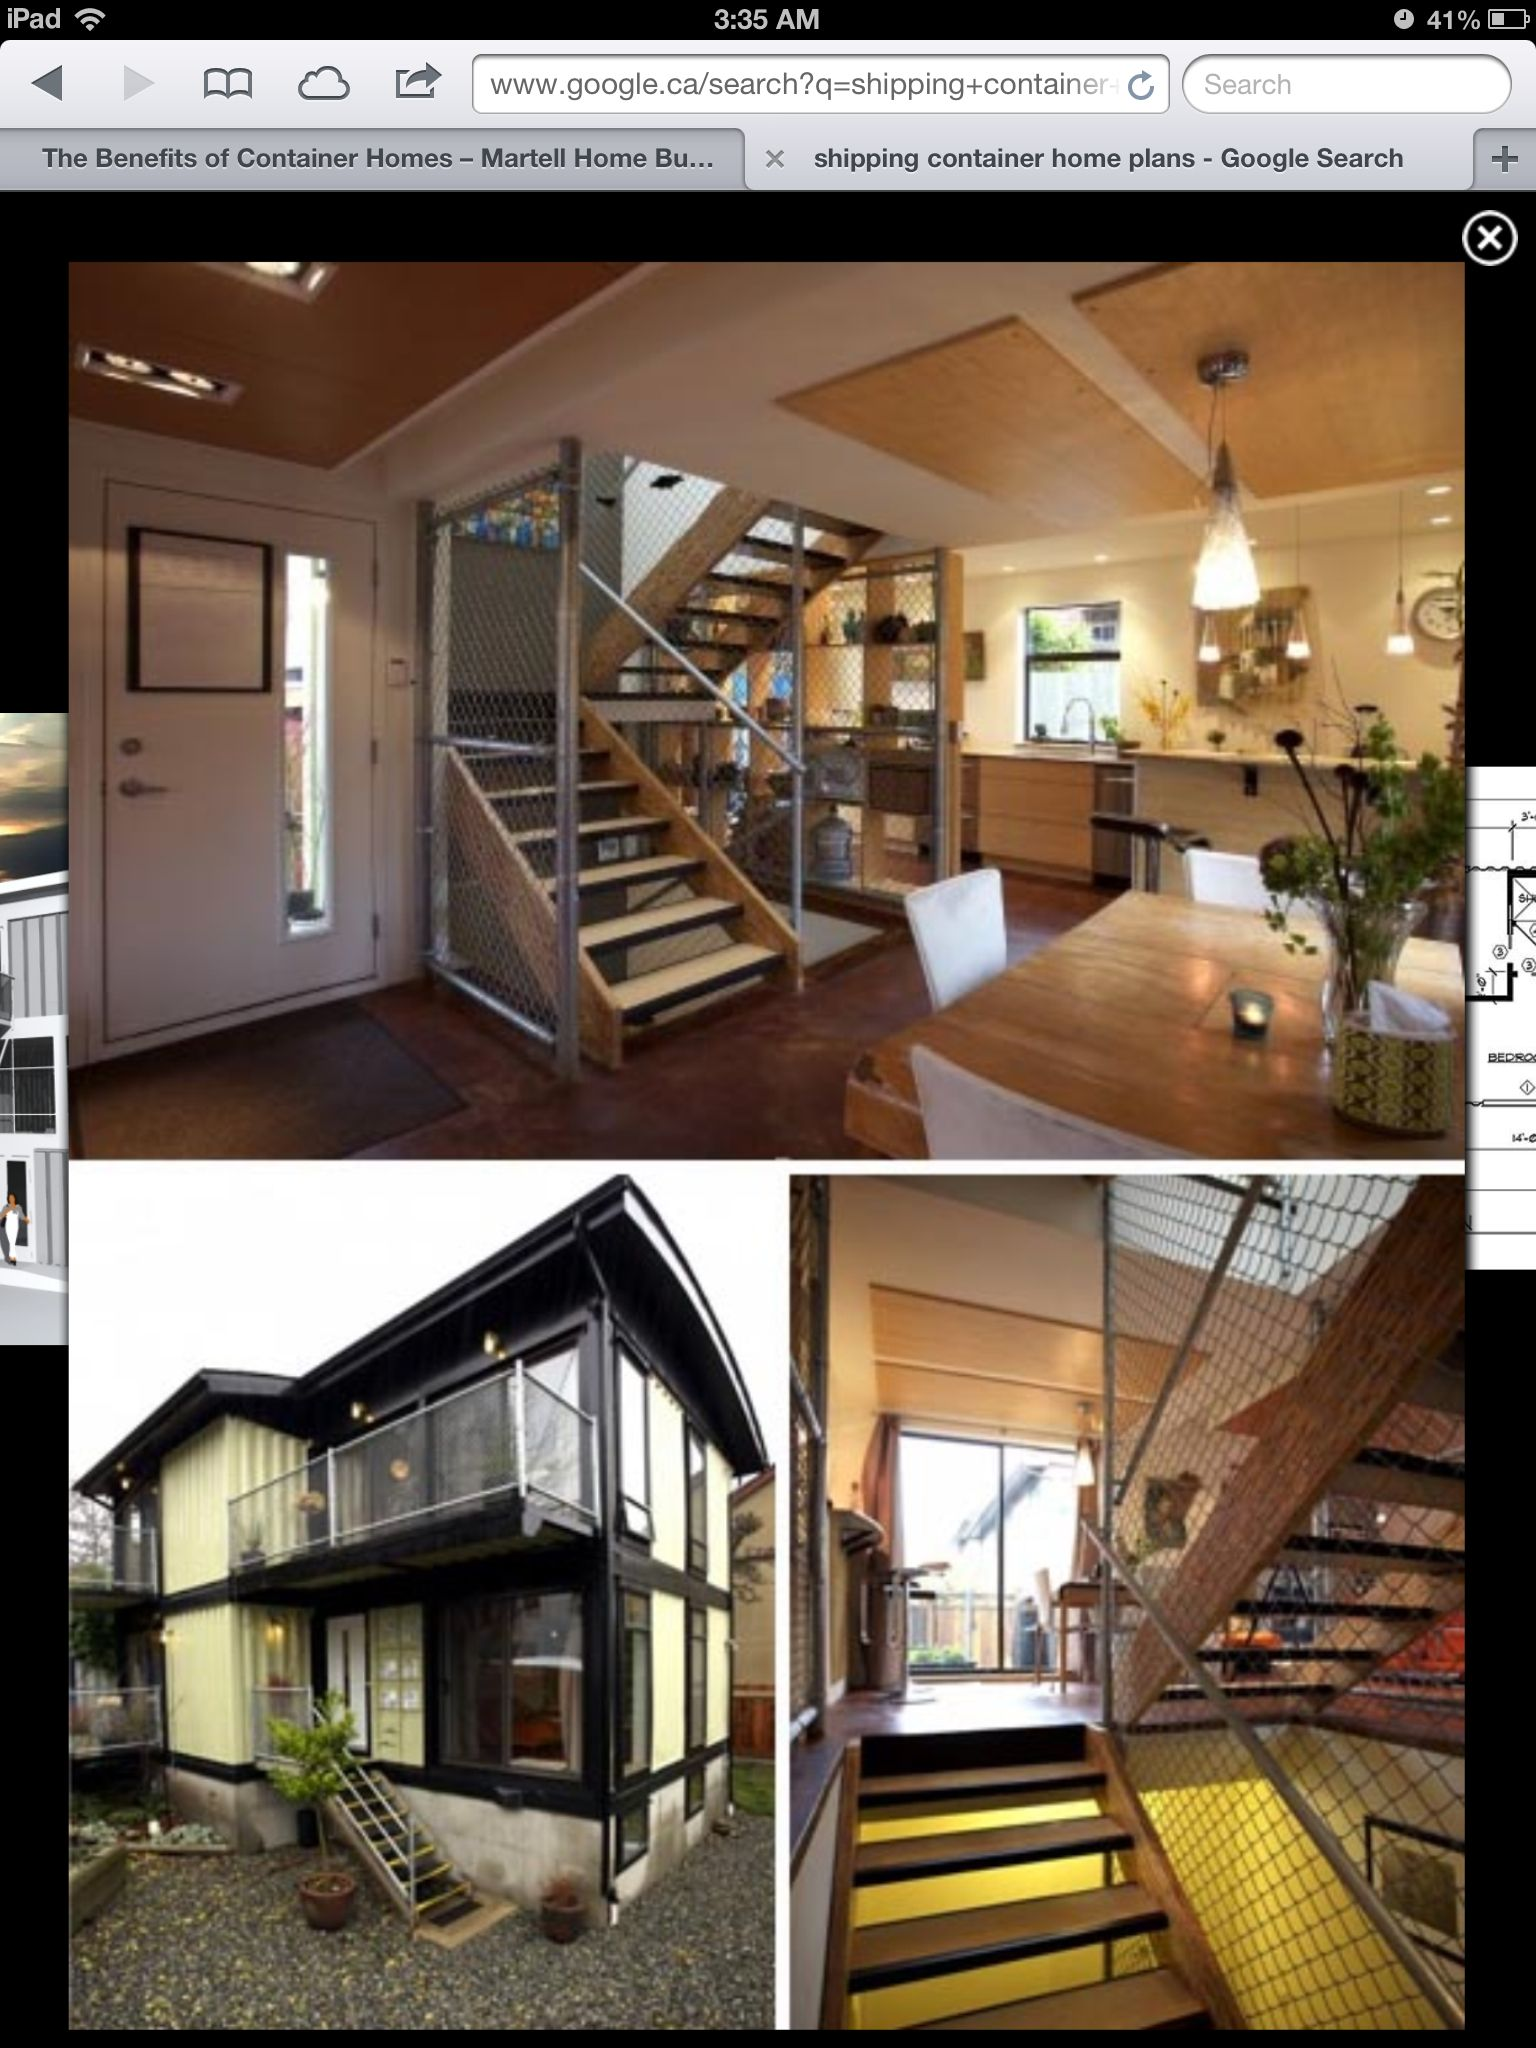 Explore Shipping Container House Plans and more!